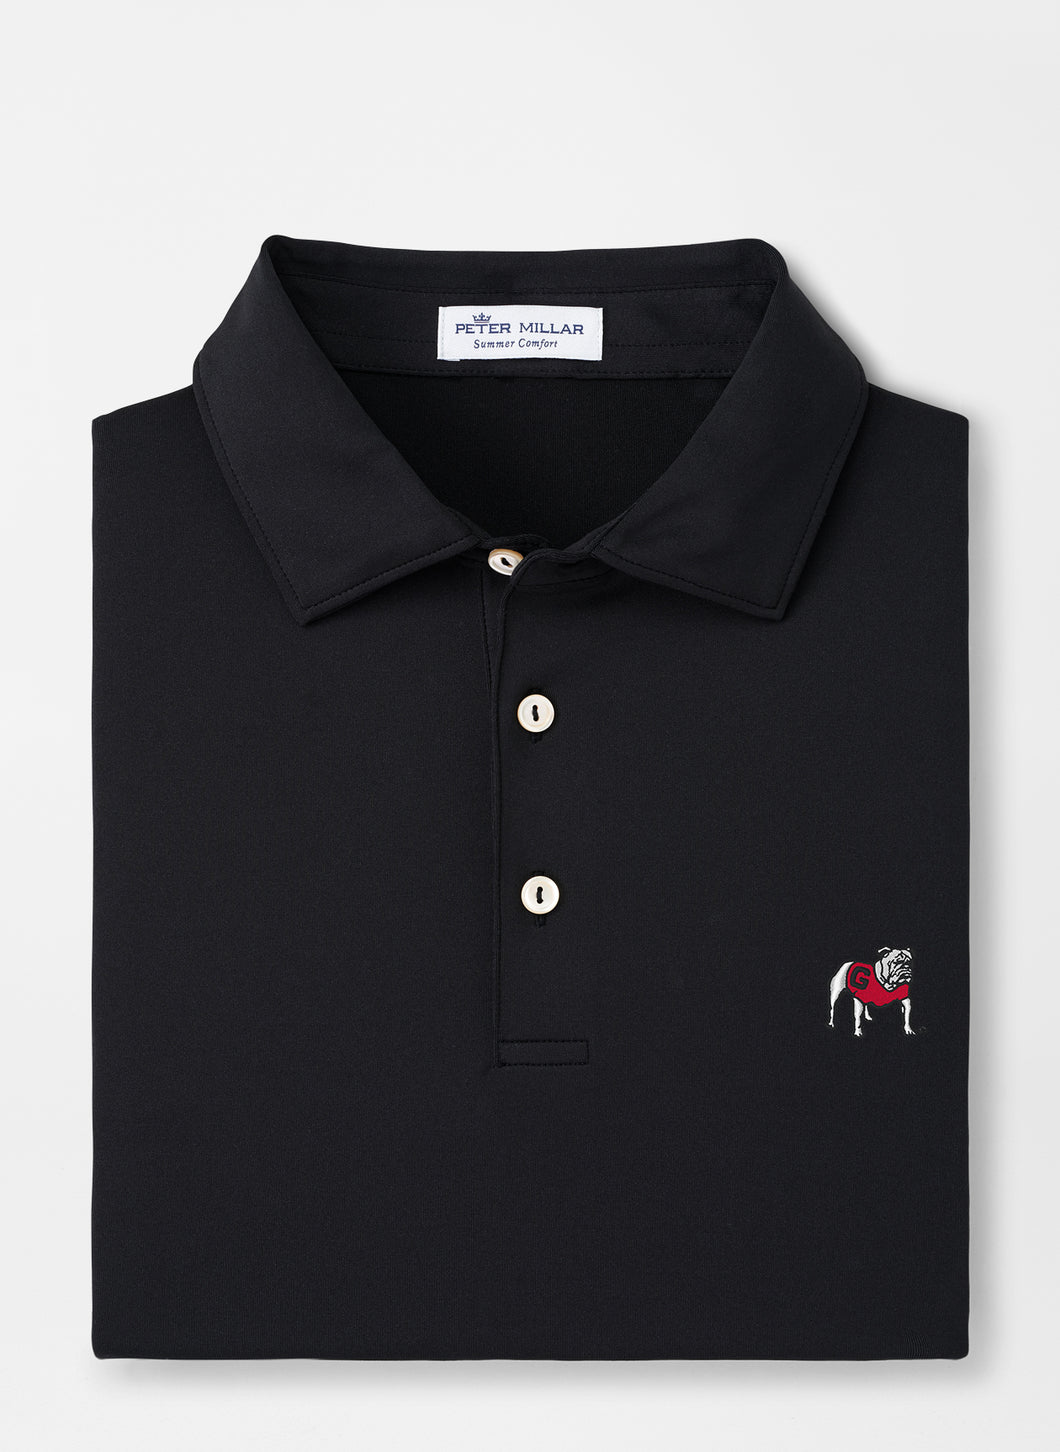 Peter Millar Georgia Standing Bulldog Performance Polo in Black